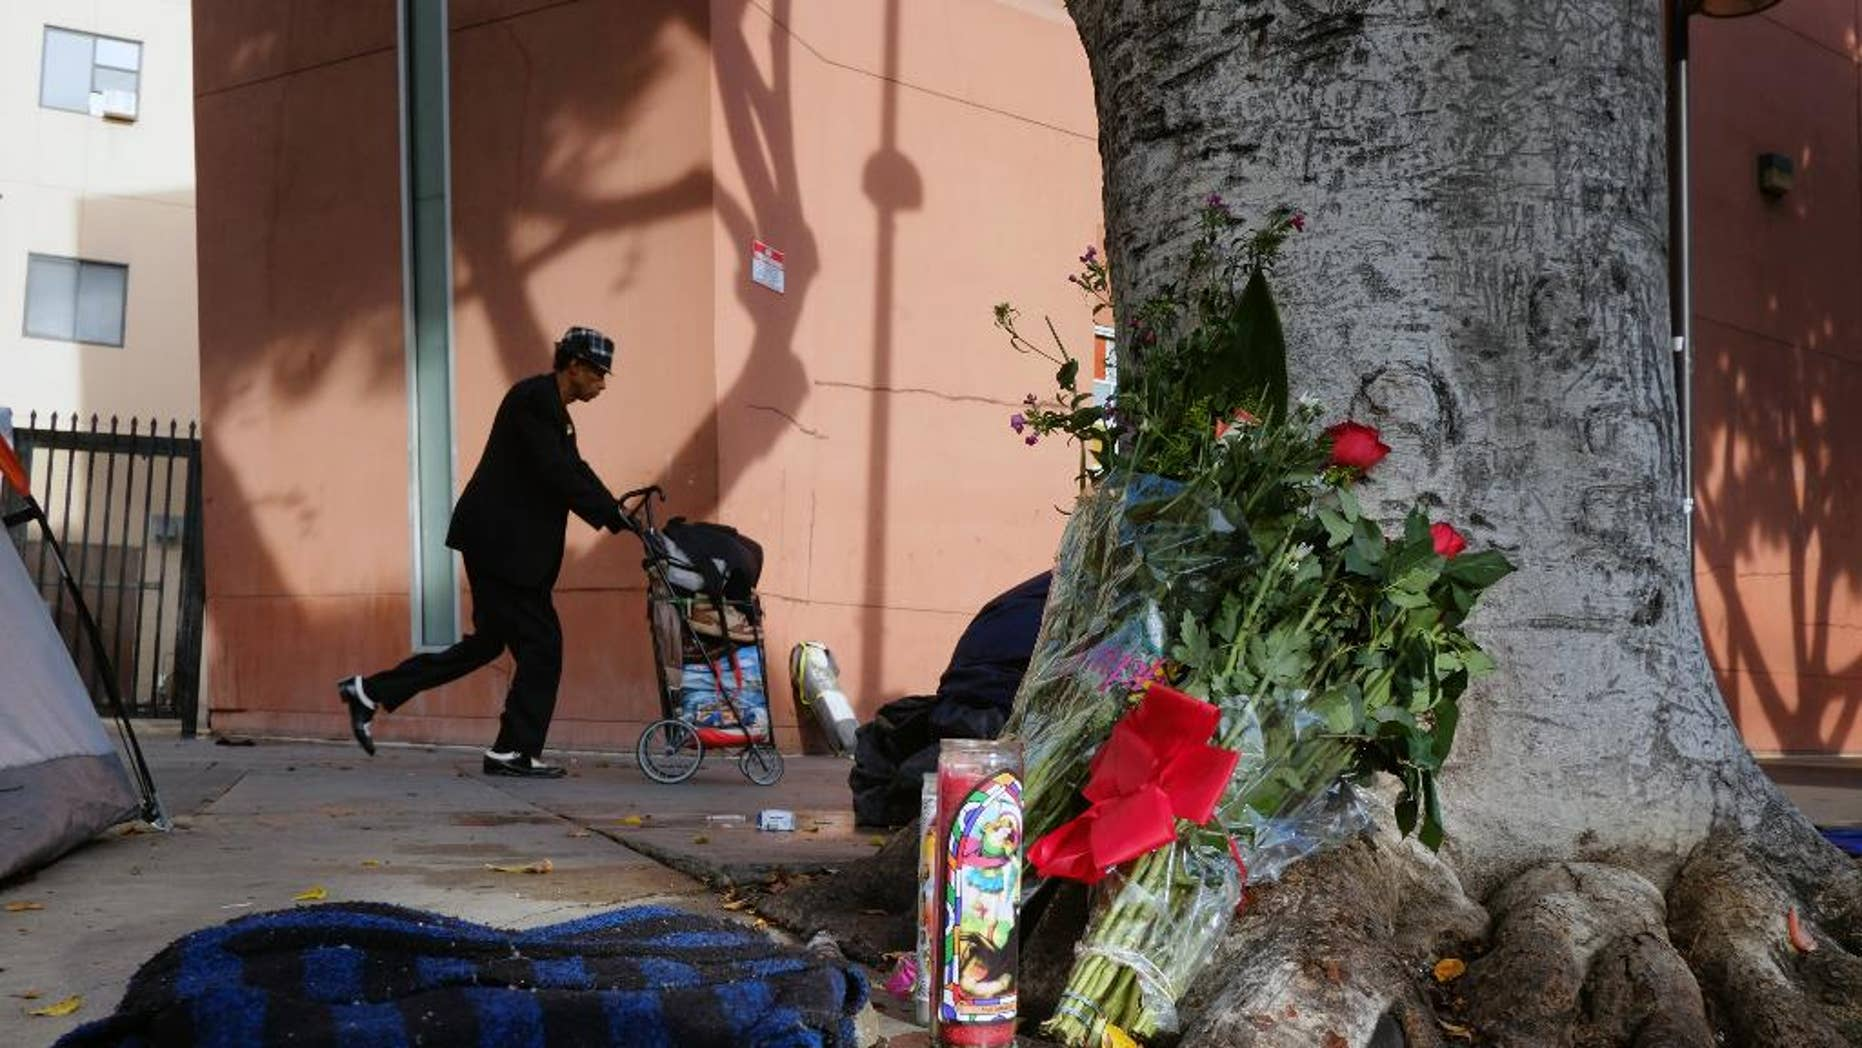 FILE - This March 2, 2015 file photo shows a pedestrian walks past flowers and candles placed on a sidewalk near where Charly Keunang a homeless man was shot and killed by police in the Skid Row section of downtown Los Angeles. An officer dropped a nightstick during the struggle with Keunang and the woman who picked it up now faces an assault charge that could send her to prison for 25 years to life. The March shooting was captured on video, which shows Trishawn Cardessa Carey, 34, briefly lifting the baton as police scuffled with Keunang. (AP Photo/Richard Vogel,File)